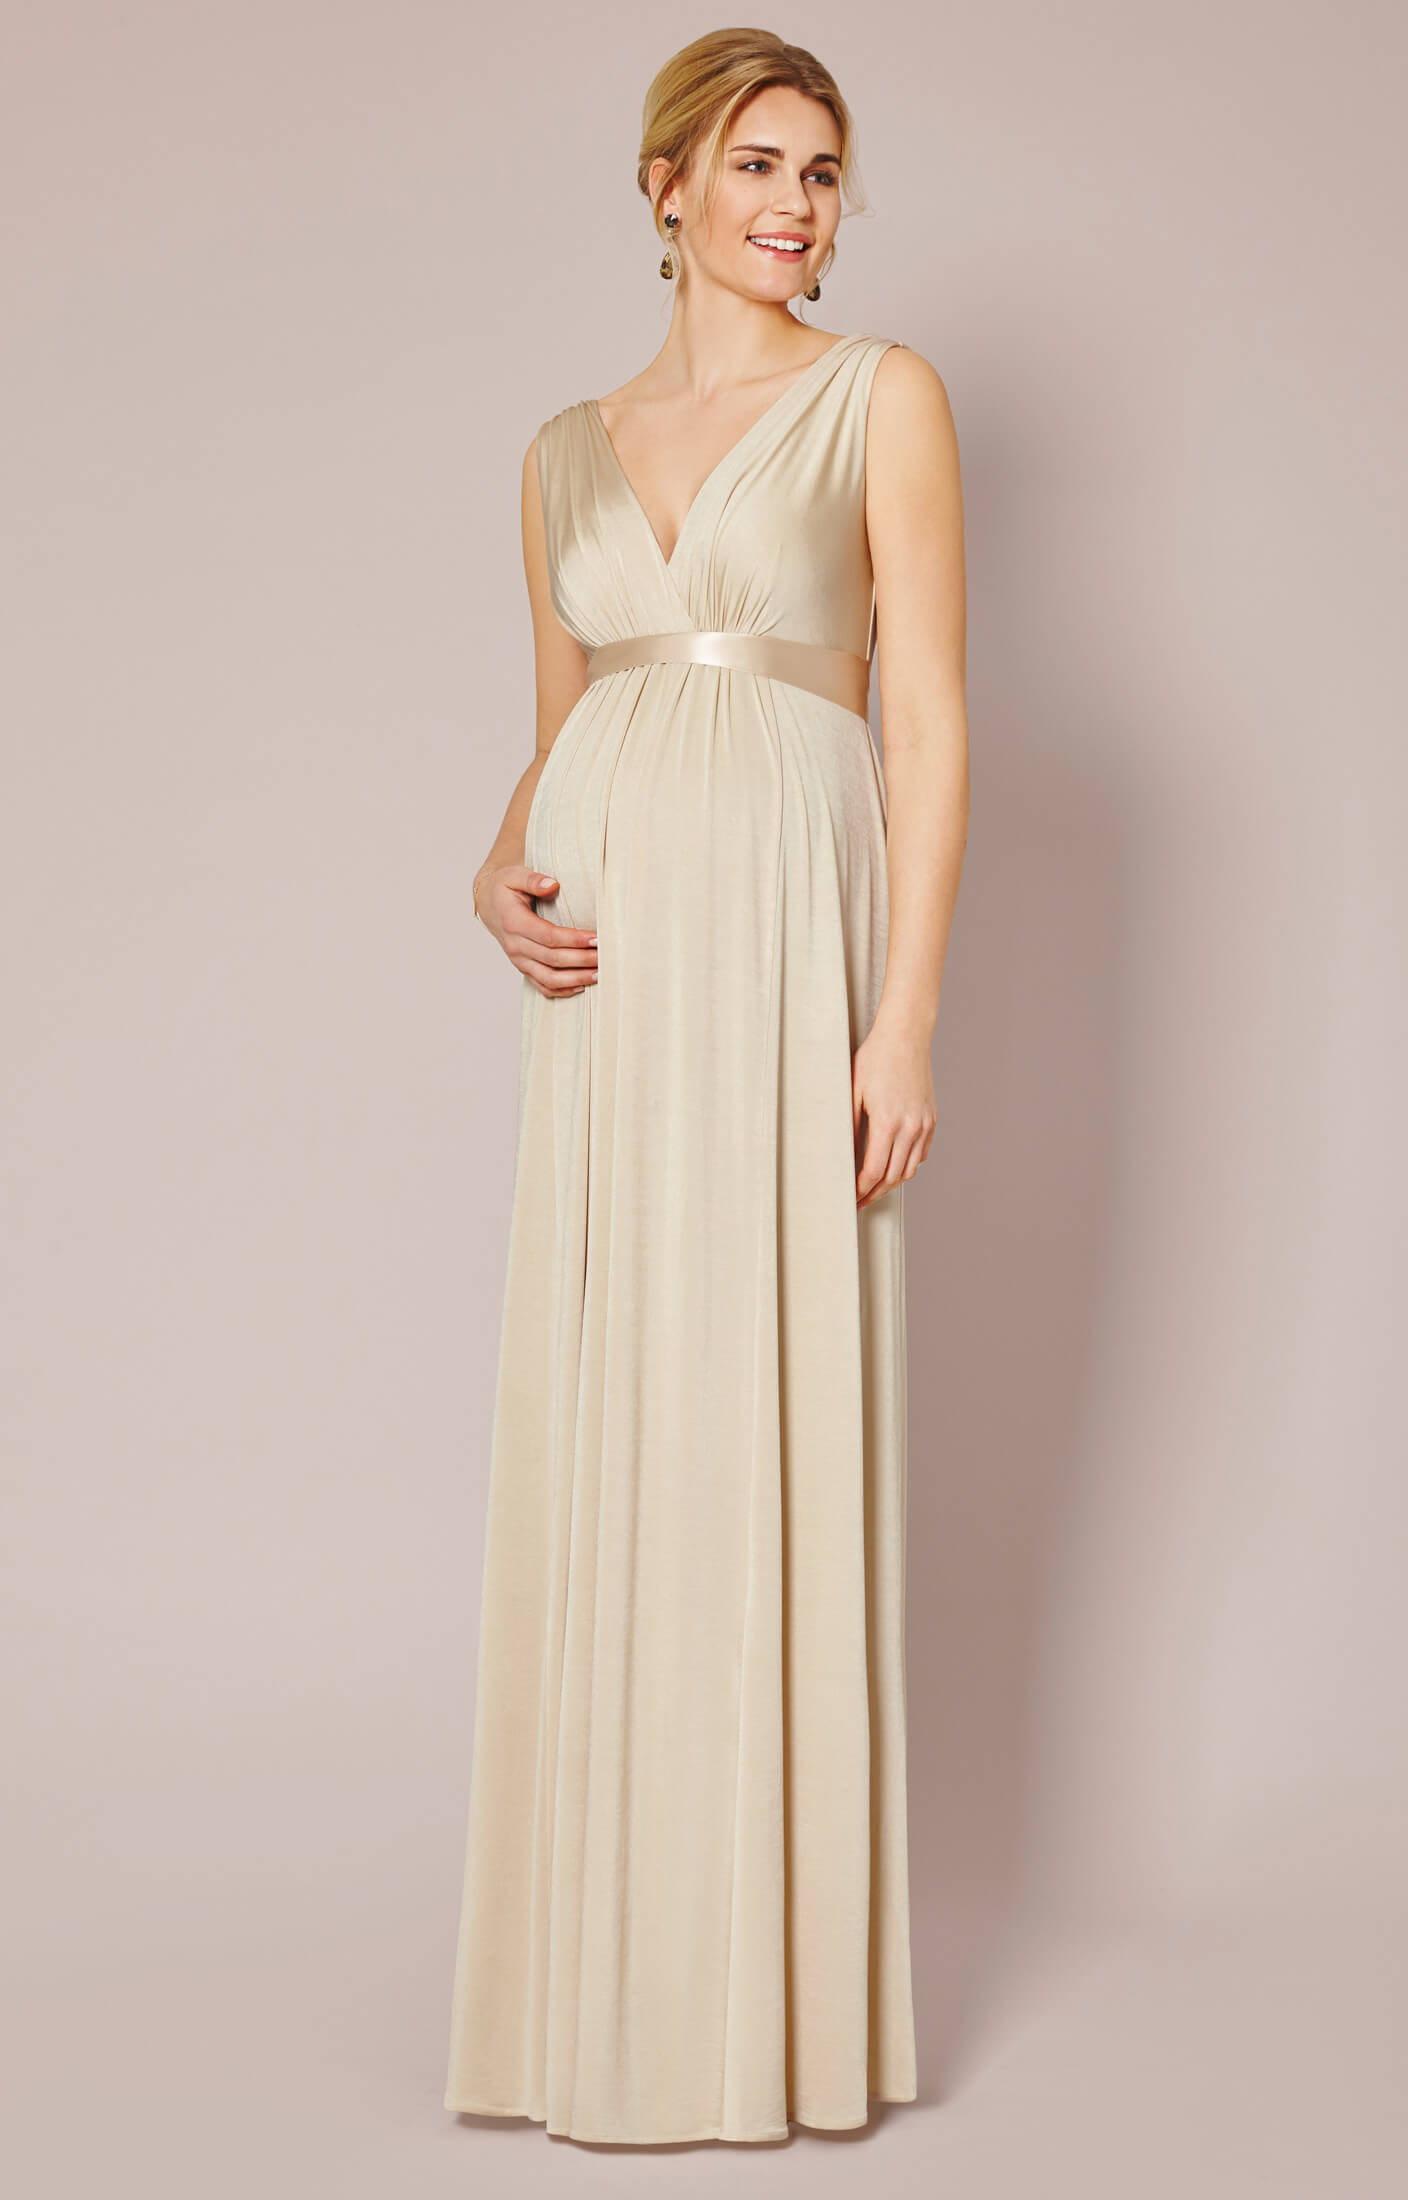 anastasia maternity gown gold dust maternity wedding dresses